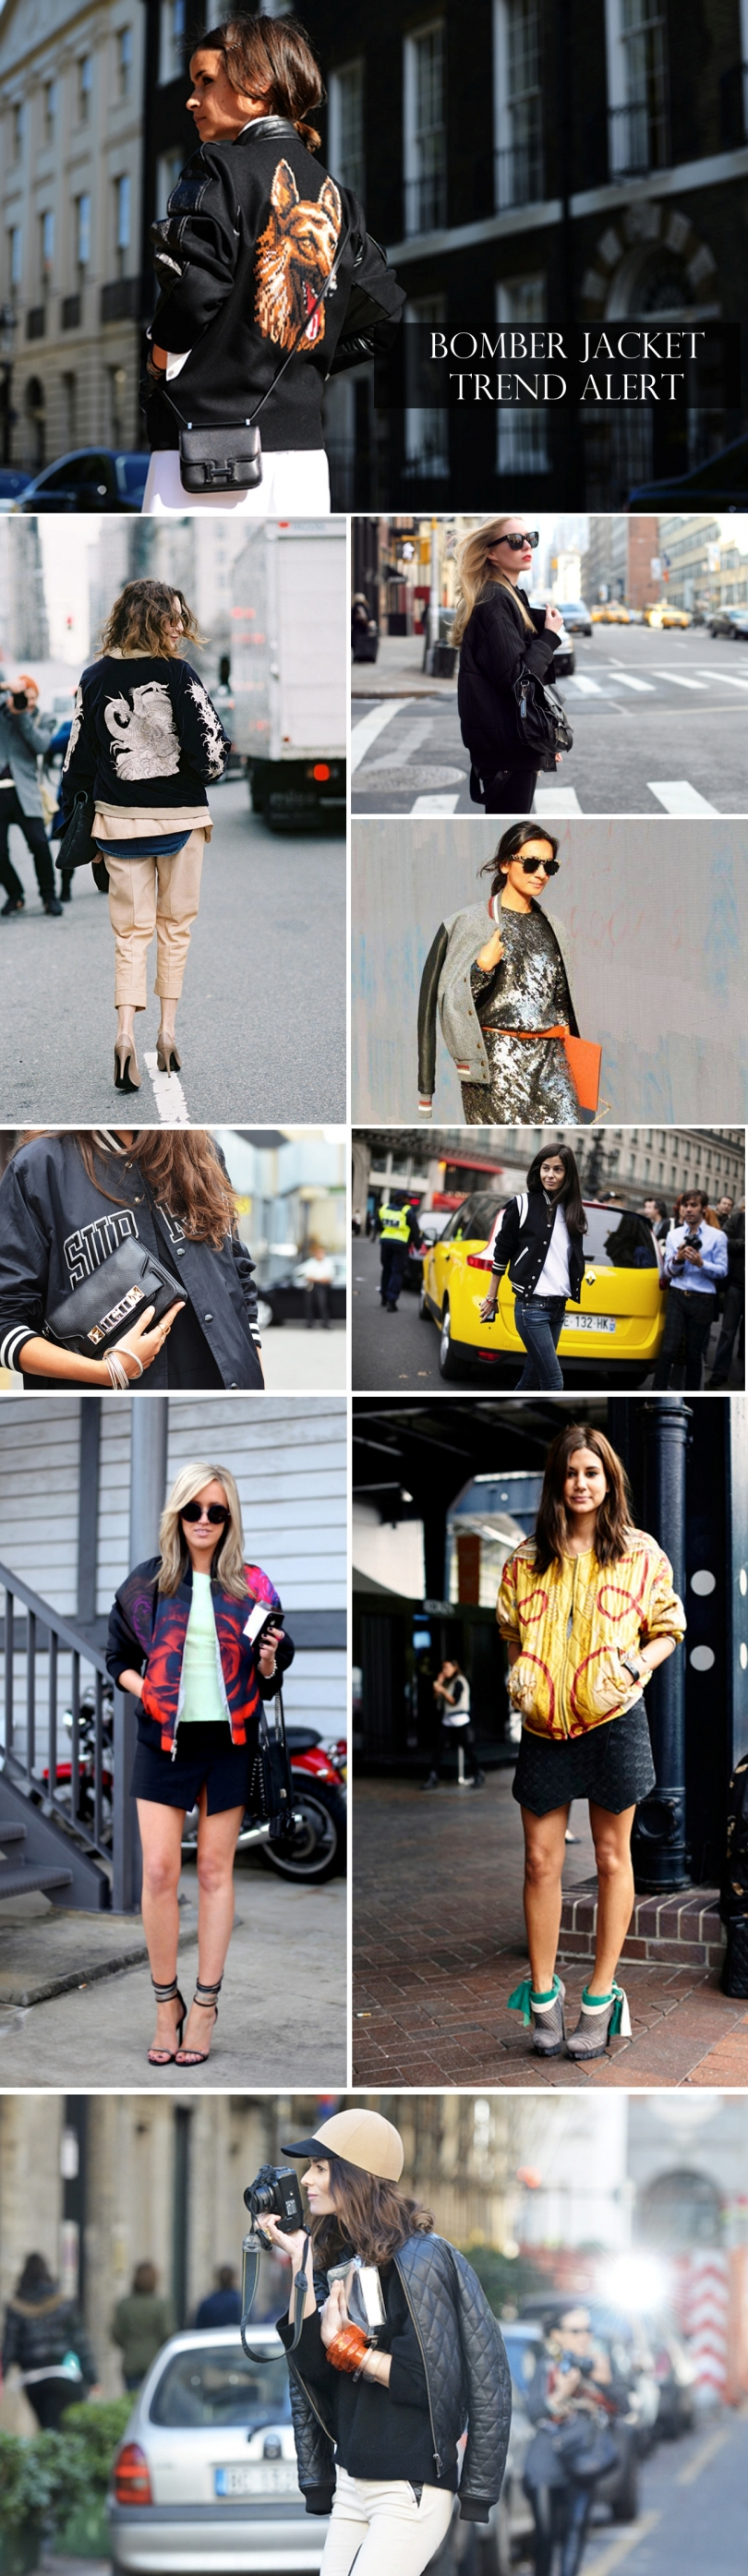 jacket-bomber-blog-marina-casemiro-trend-alert-friday